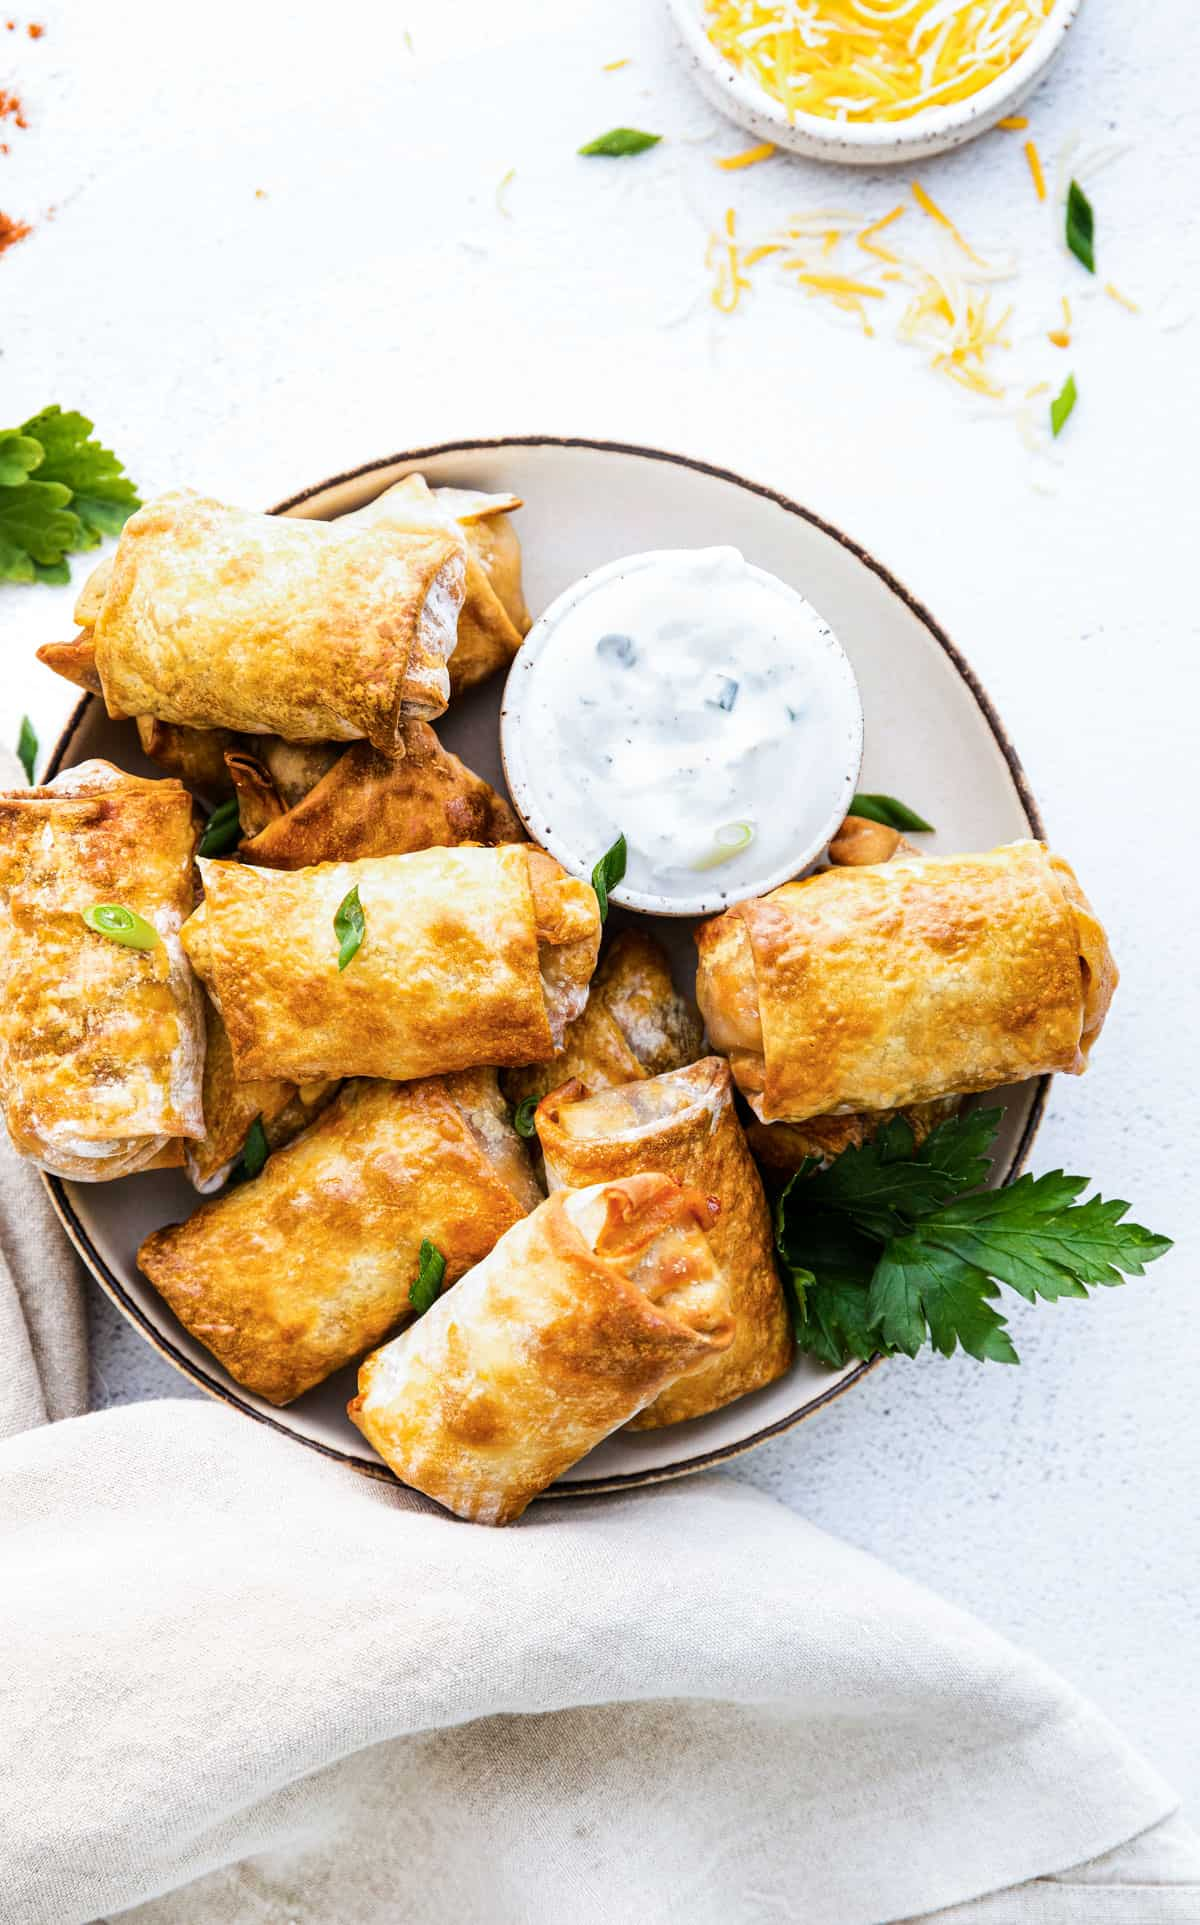 A Plate of Air Fryer Southwest Egg Rolls with a dipping sauce